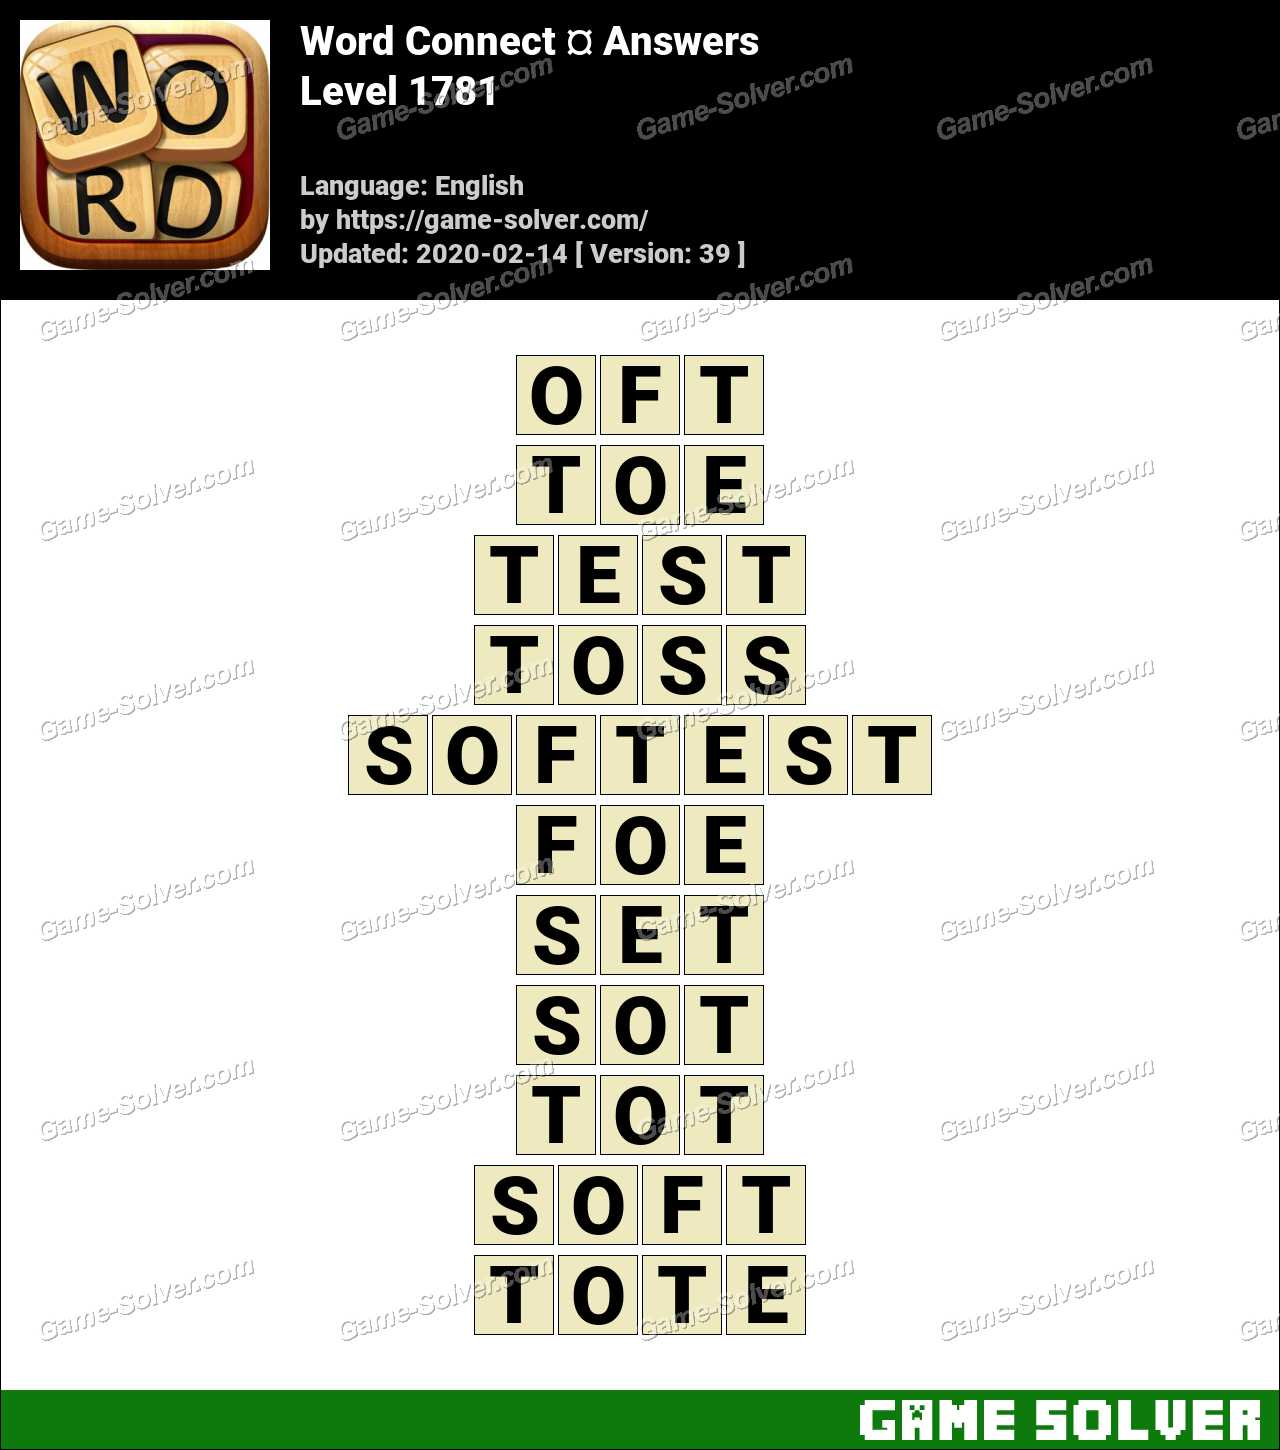 Word Connect Level 1781 Answers